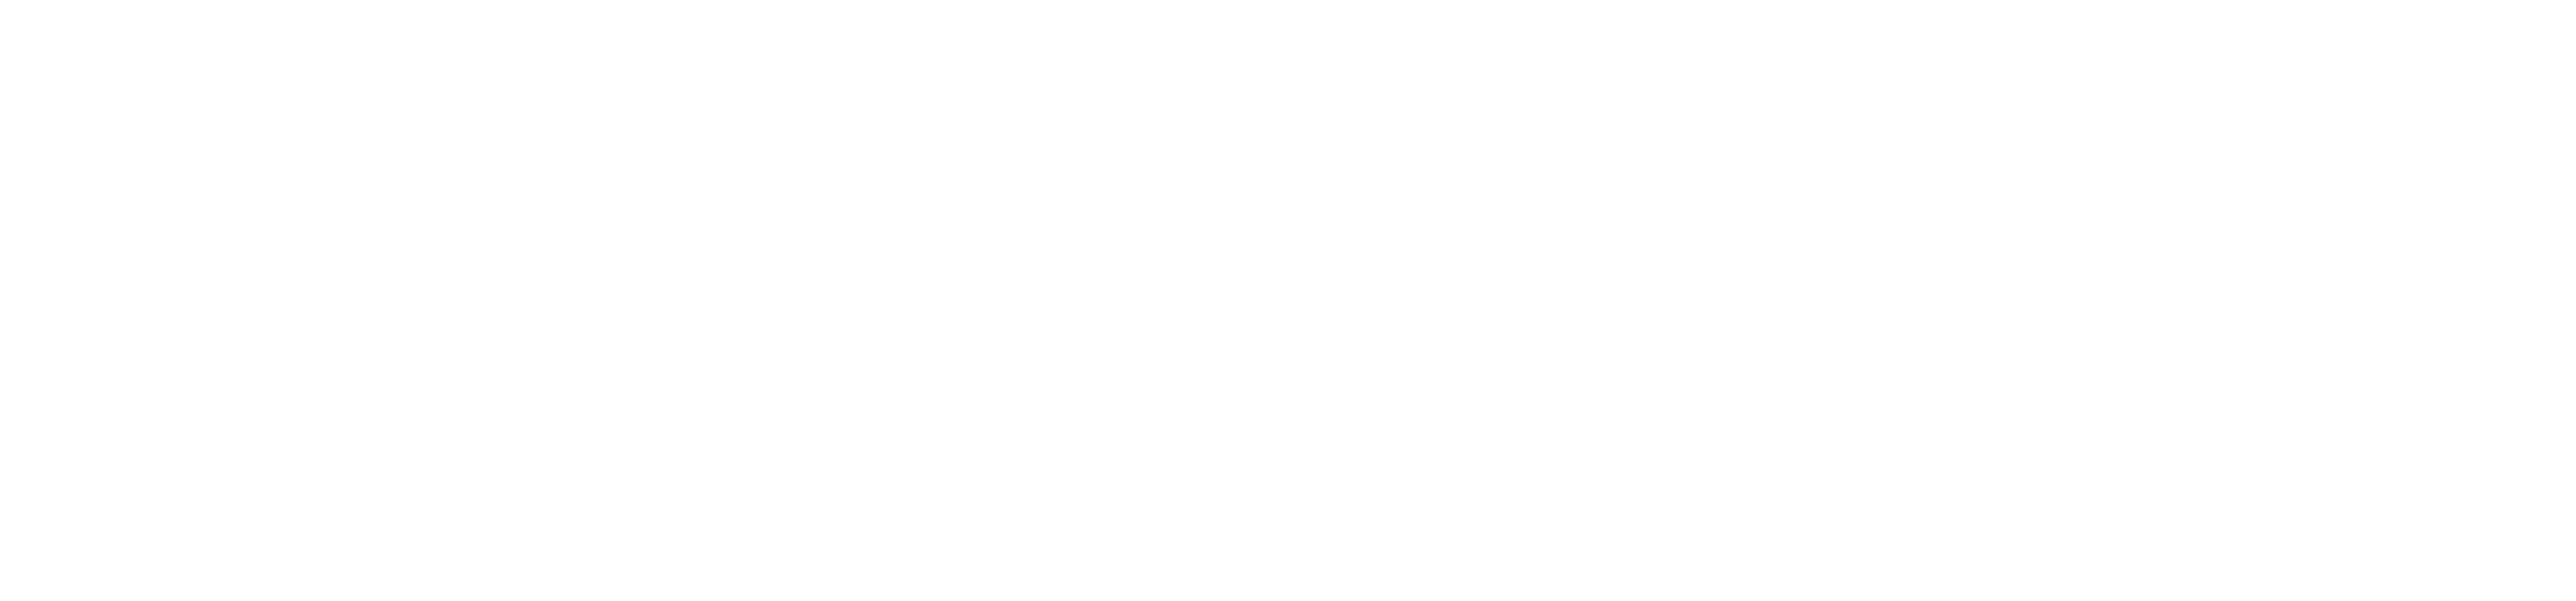 Metaphor Lab Amsterdam